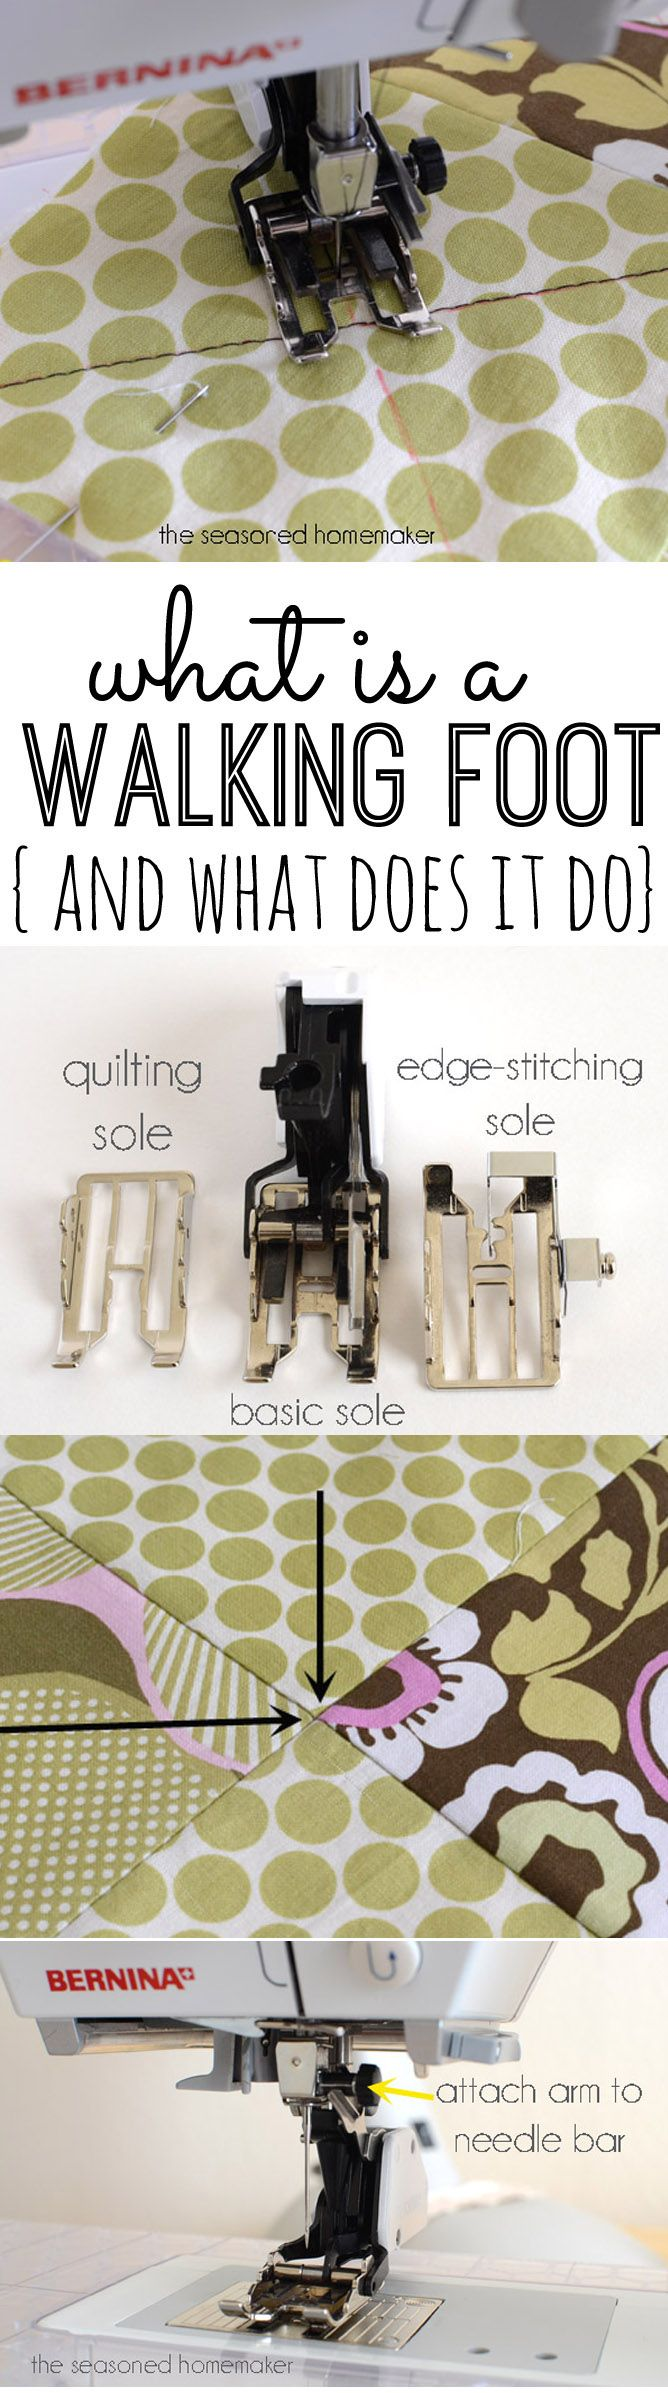 What is a WALKING FOOT and what does it do - http://www.seasonedhomemaker.com/sewing-machine-feet-the-walking-foot/  #sewingmachine